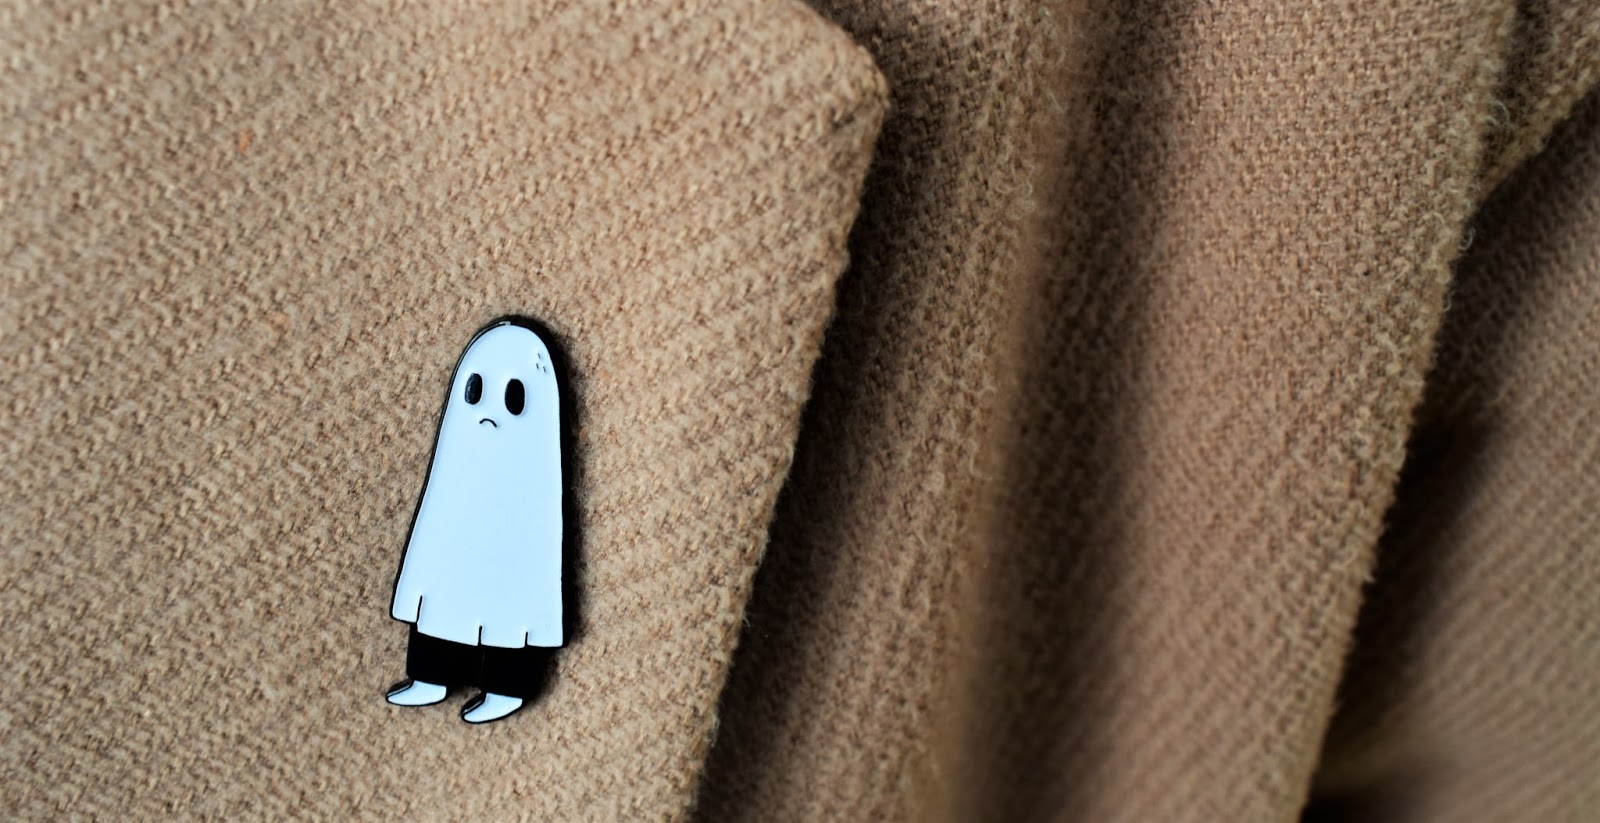 The Sad Ghost brooch, person in ghost outfit pin, pingame, enamel pin of ghost, Halloween pin